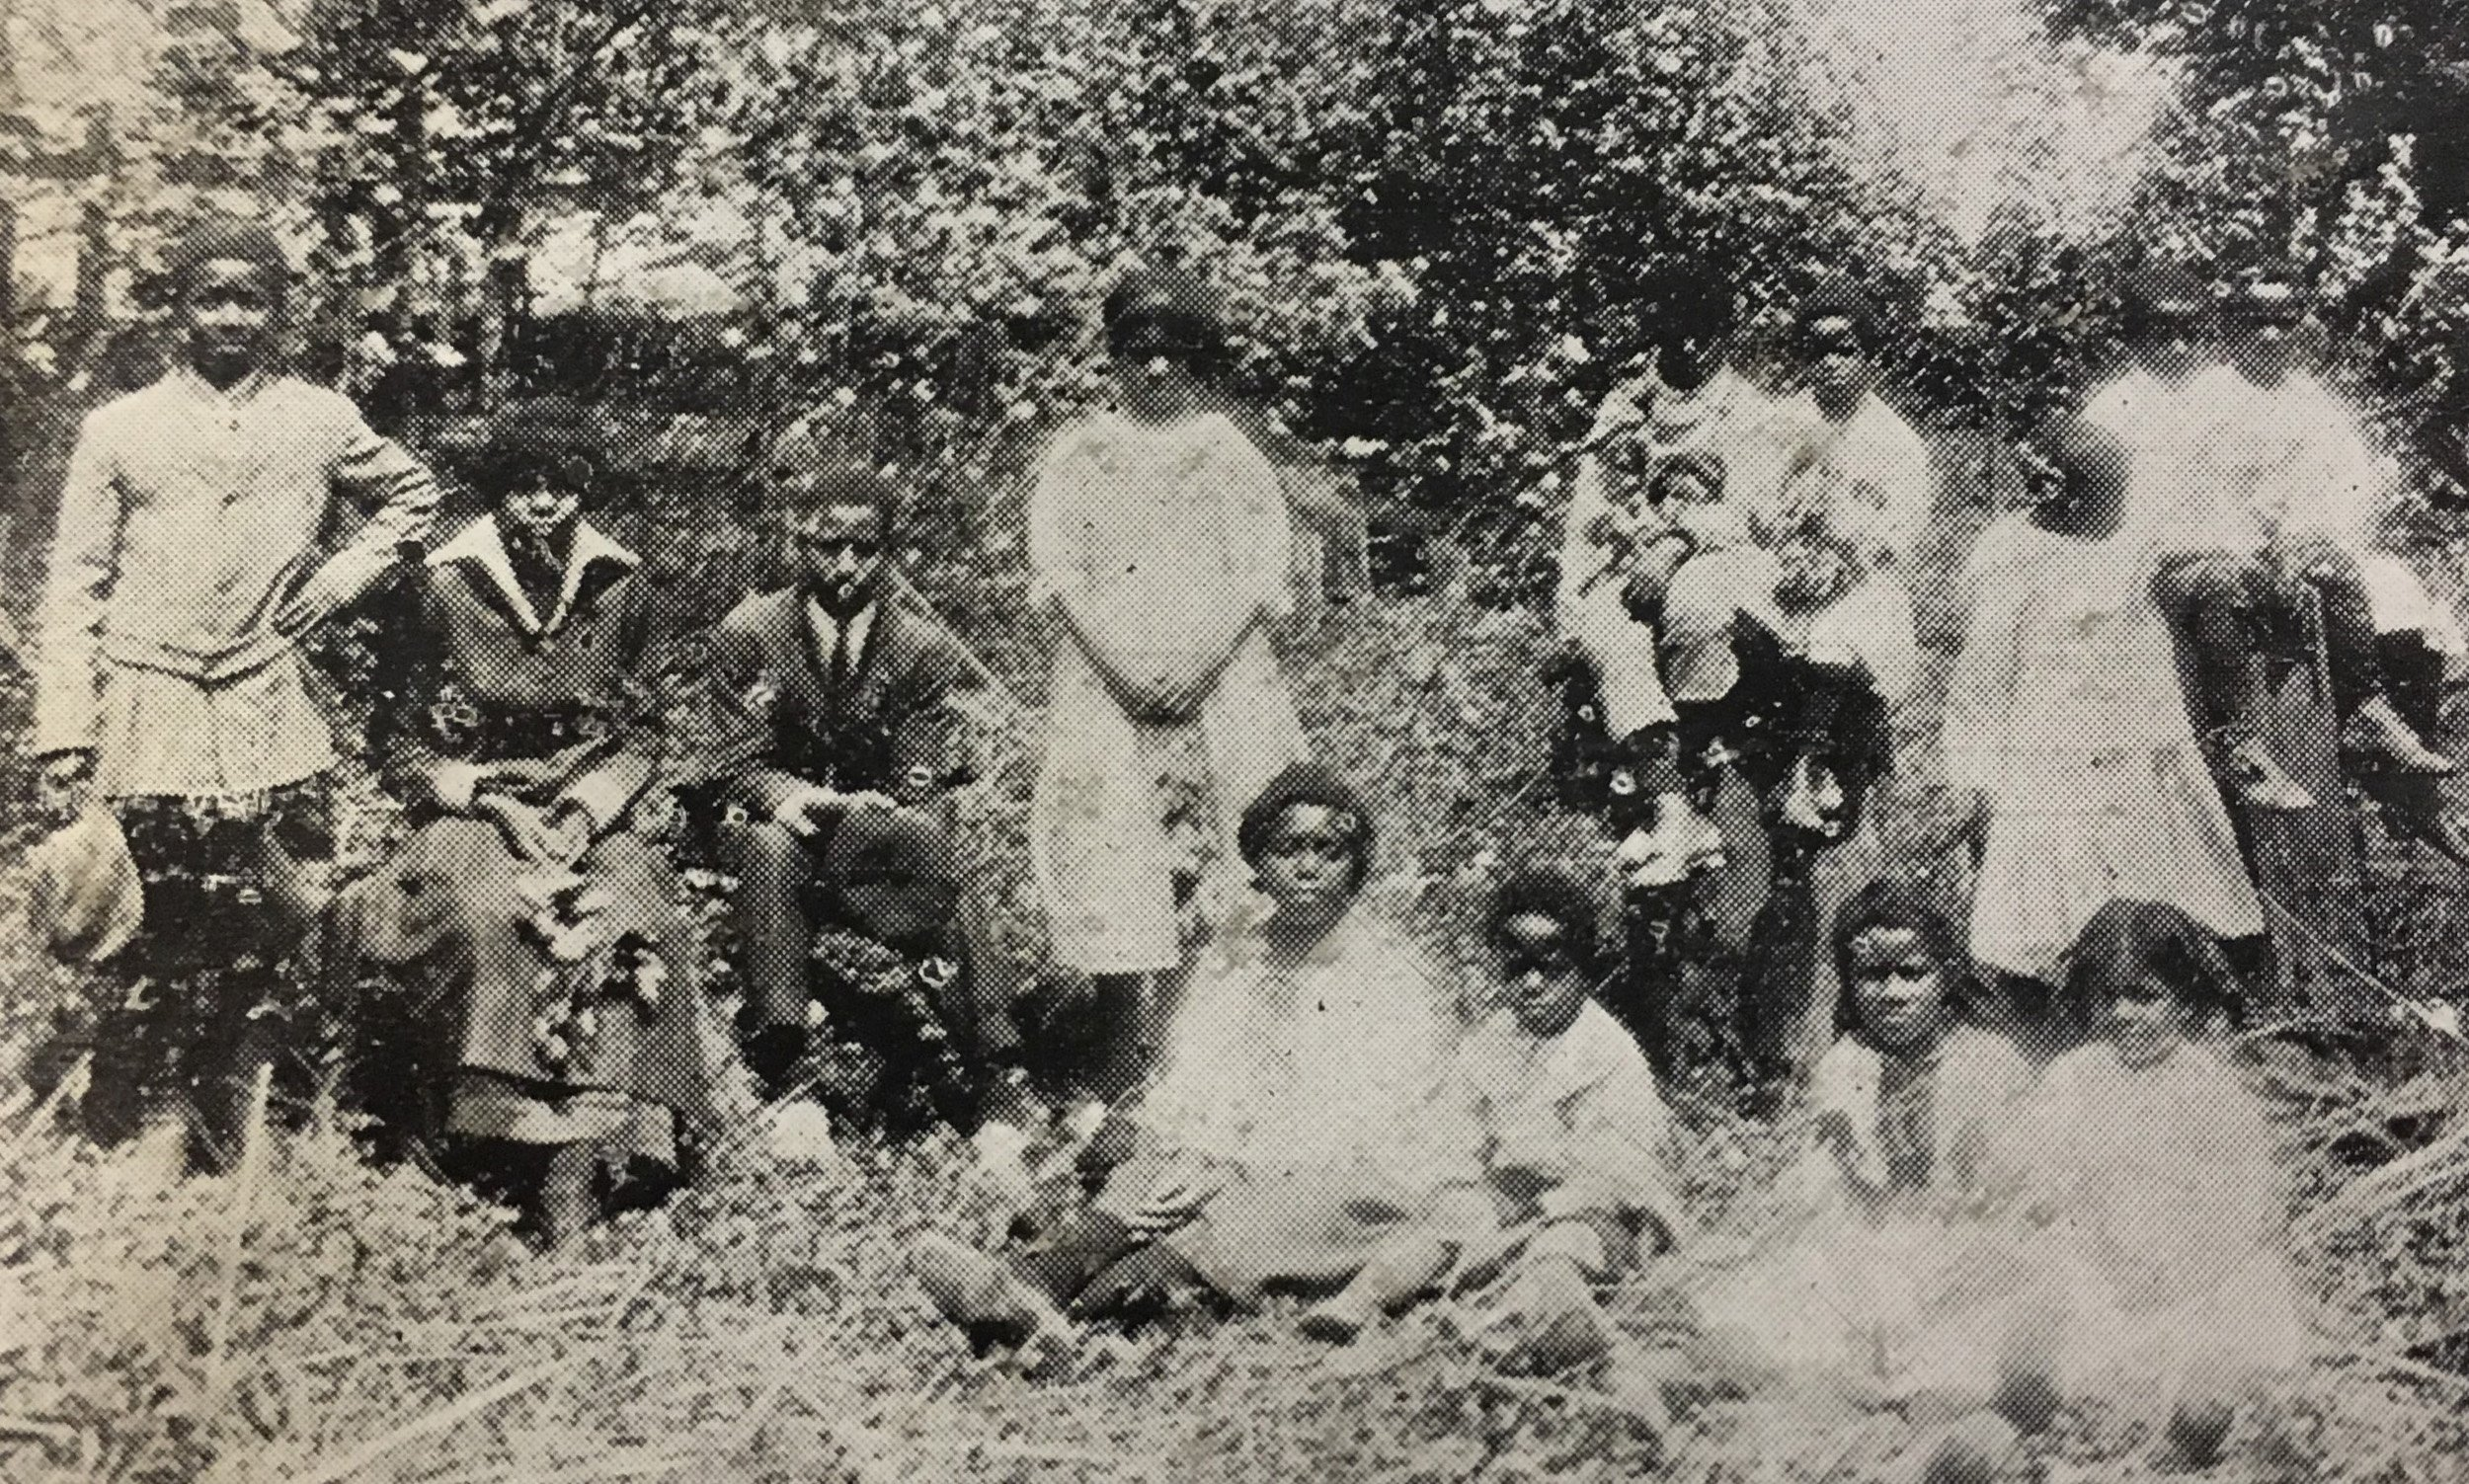 African American students of the Ceredo School in 1915. Image from the 1915 Ceredo-Kenova High School yearbook; courtesy of the Ceredo Historical Society Museum.